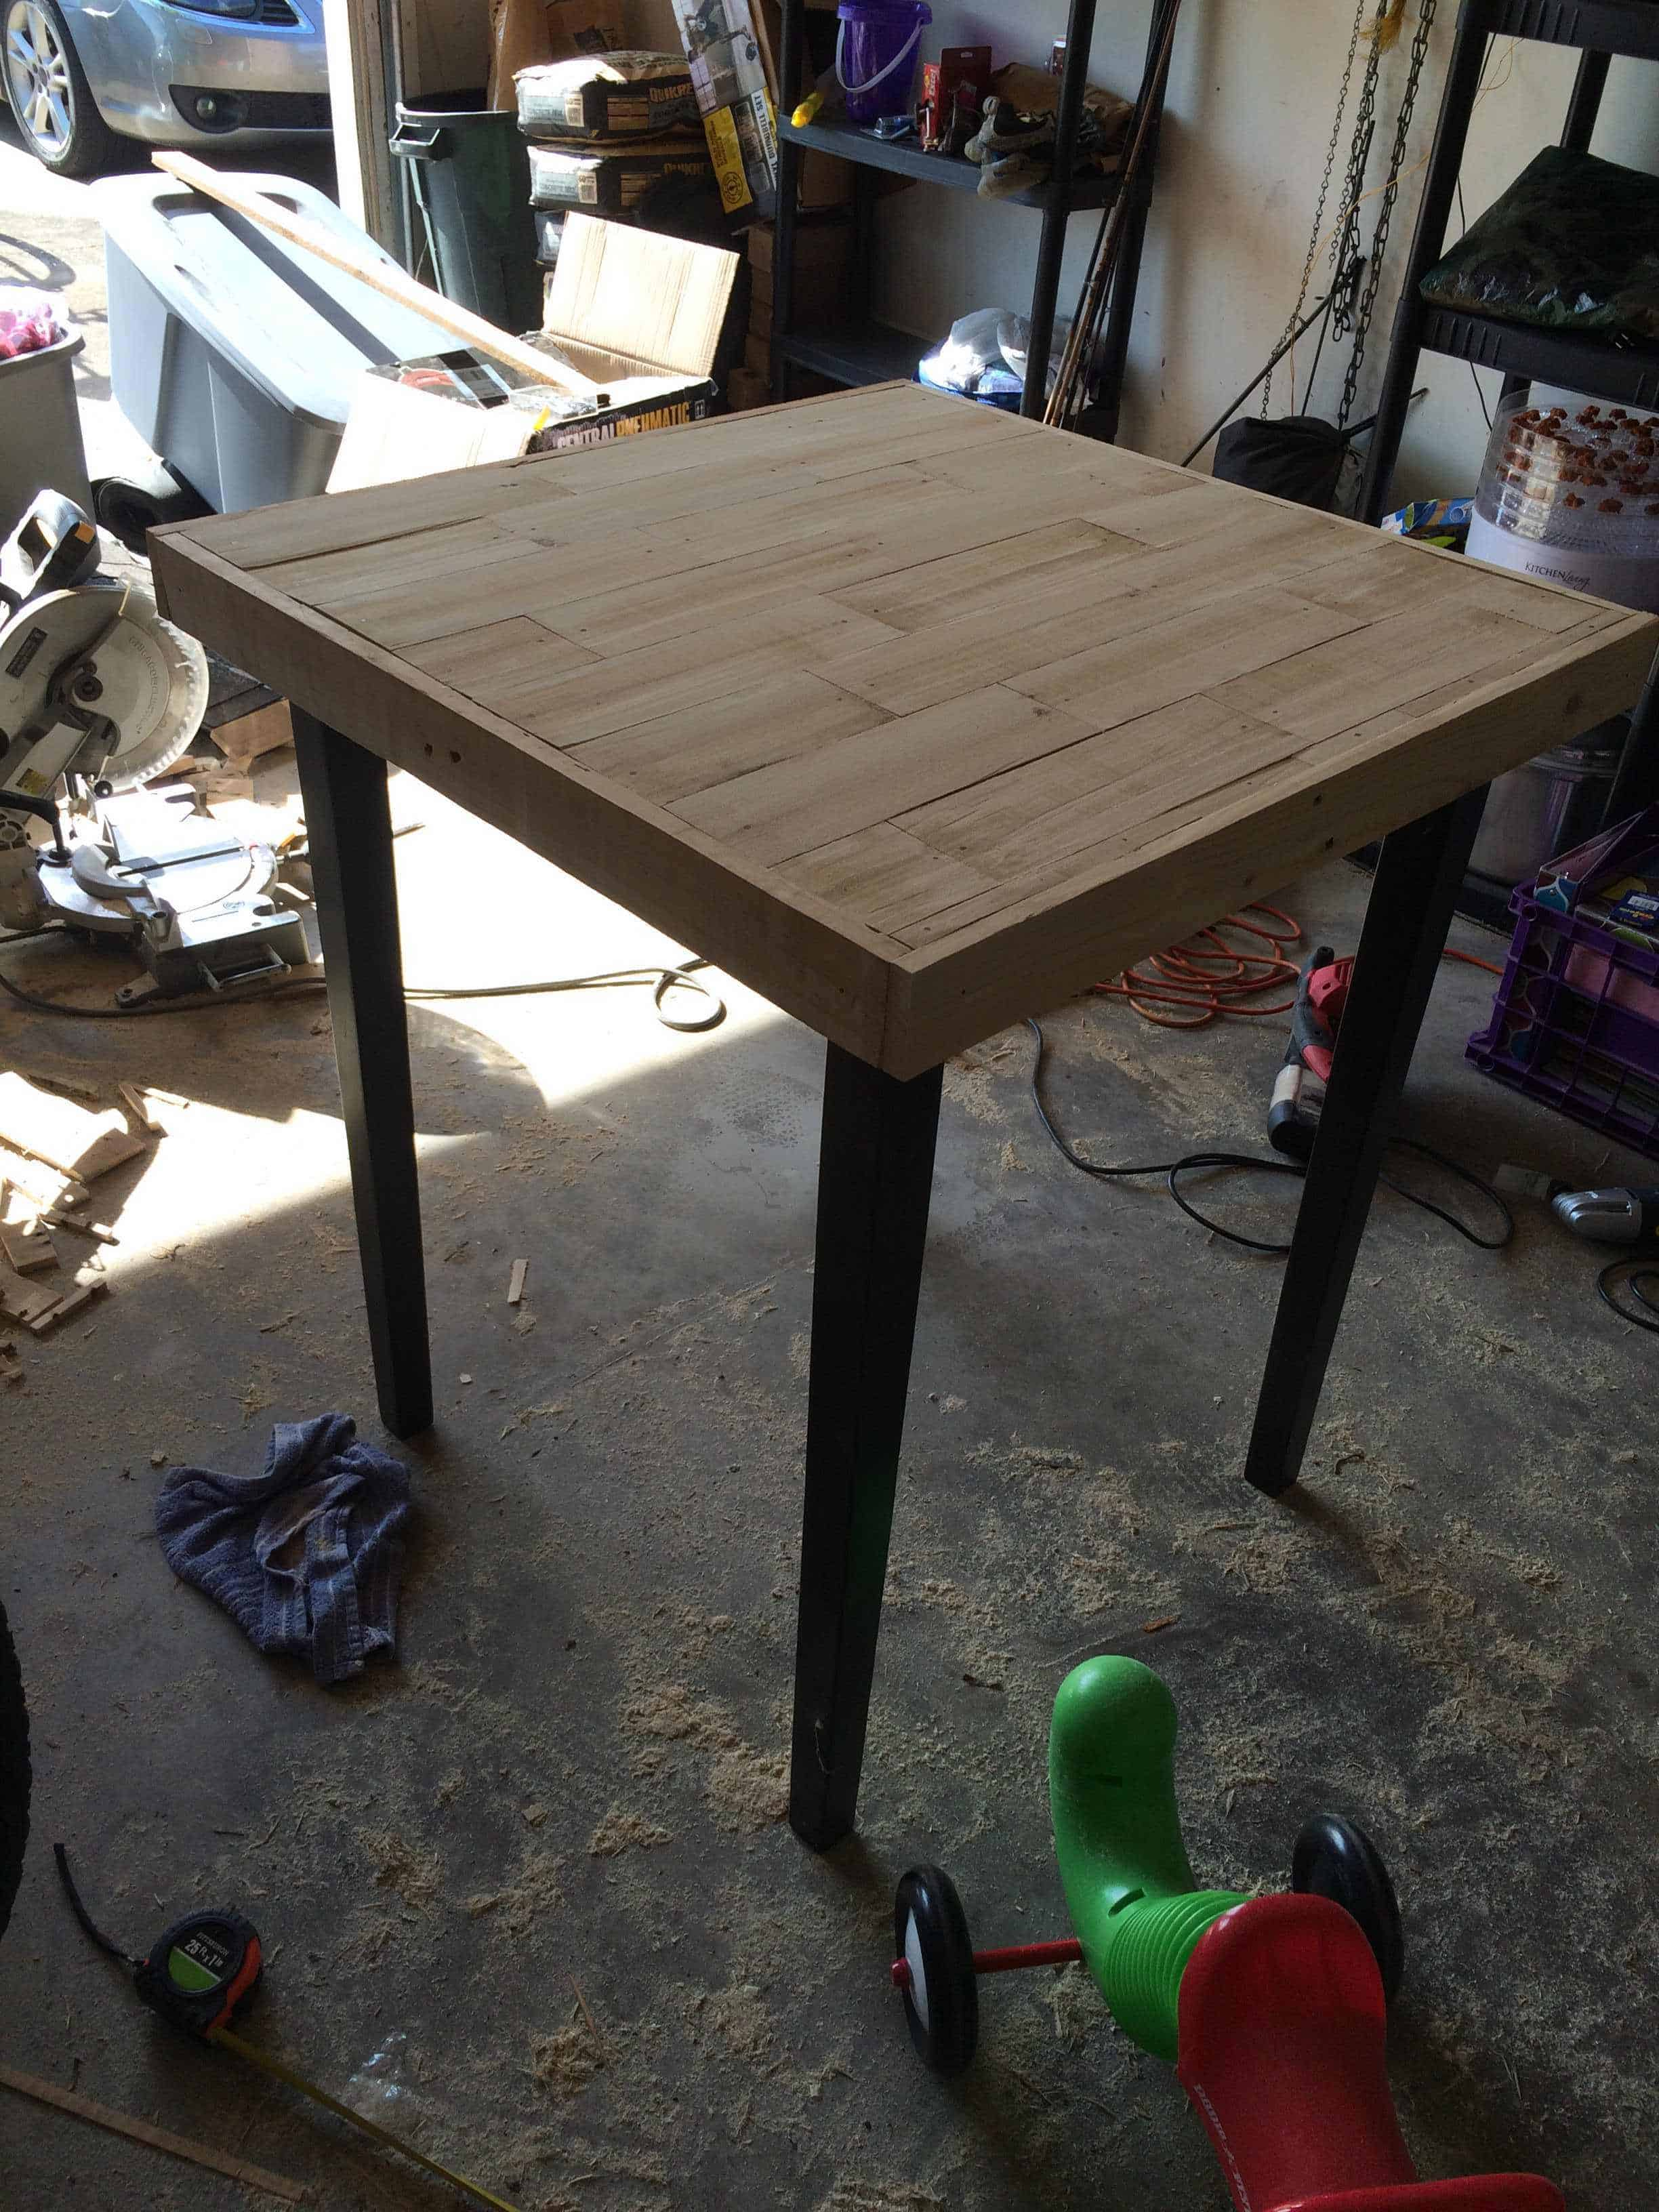 Wood Pallet Table Top Tabletop Refinished With Pallet Wood O Pallet Ideas O 1001 Pallets